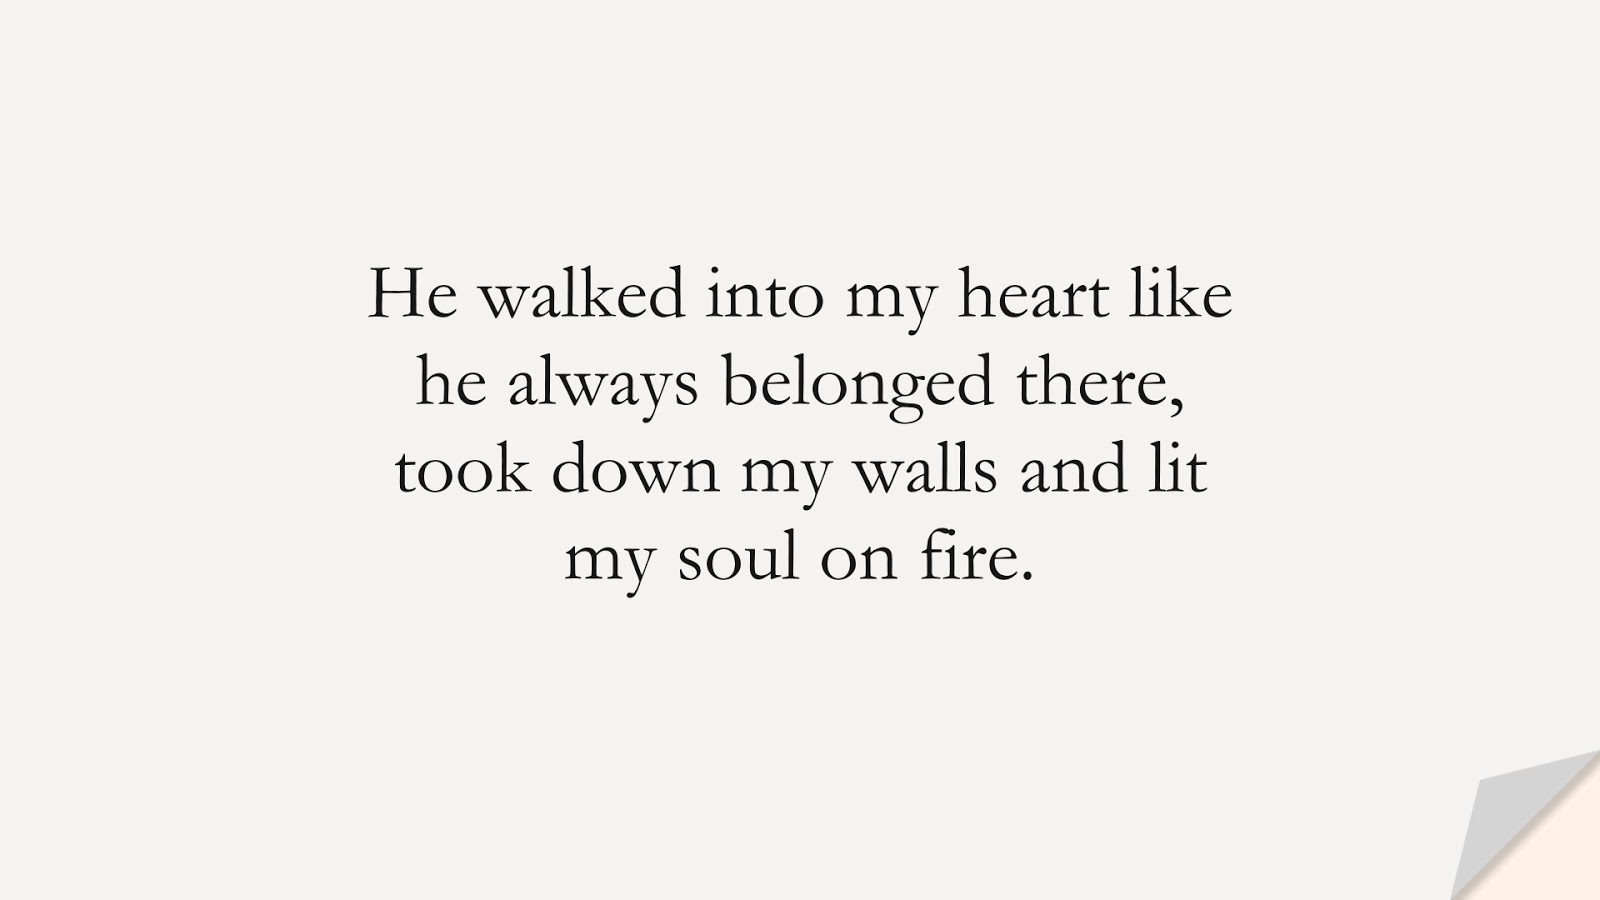 He walked into my heart like he always belonged there, took down my walls and lit my soul on fire.FALSE